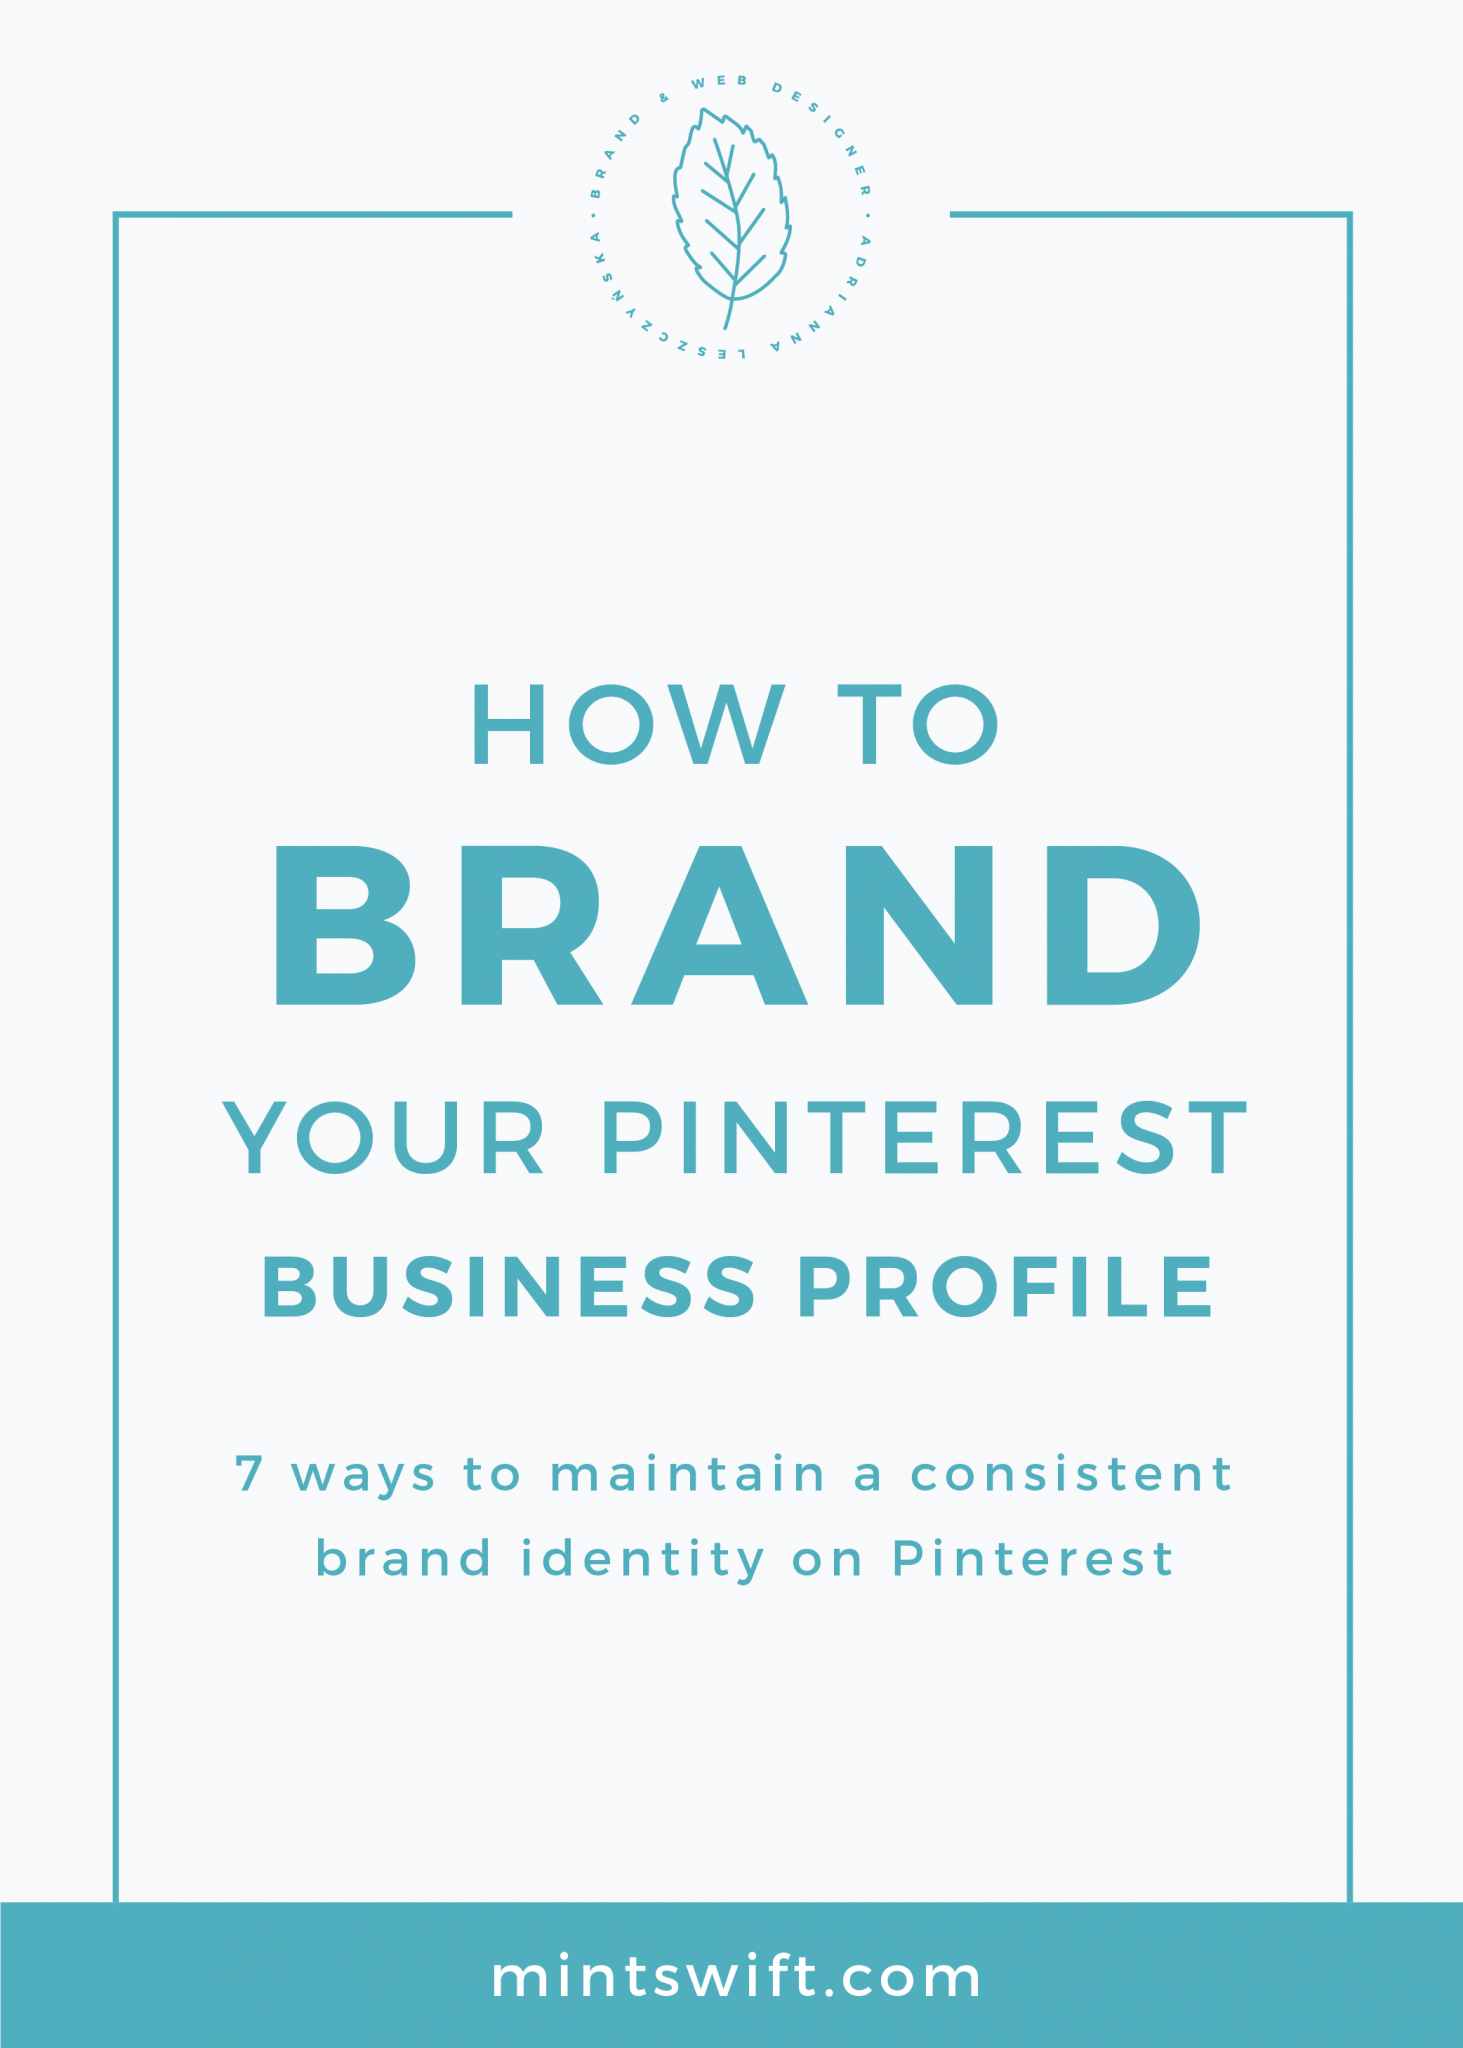 How to Brand Your Pinterest Business Profile. 7 Ways to Maintain a Consistent Brand Identity on Pinterest MintSwift